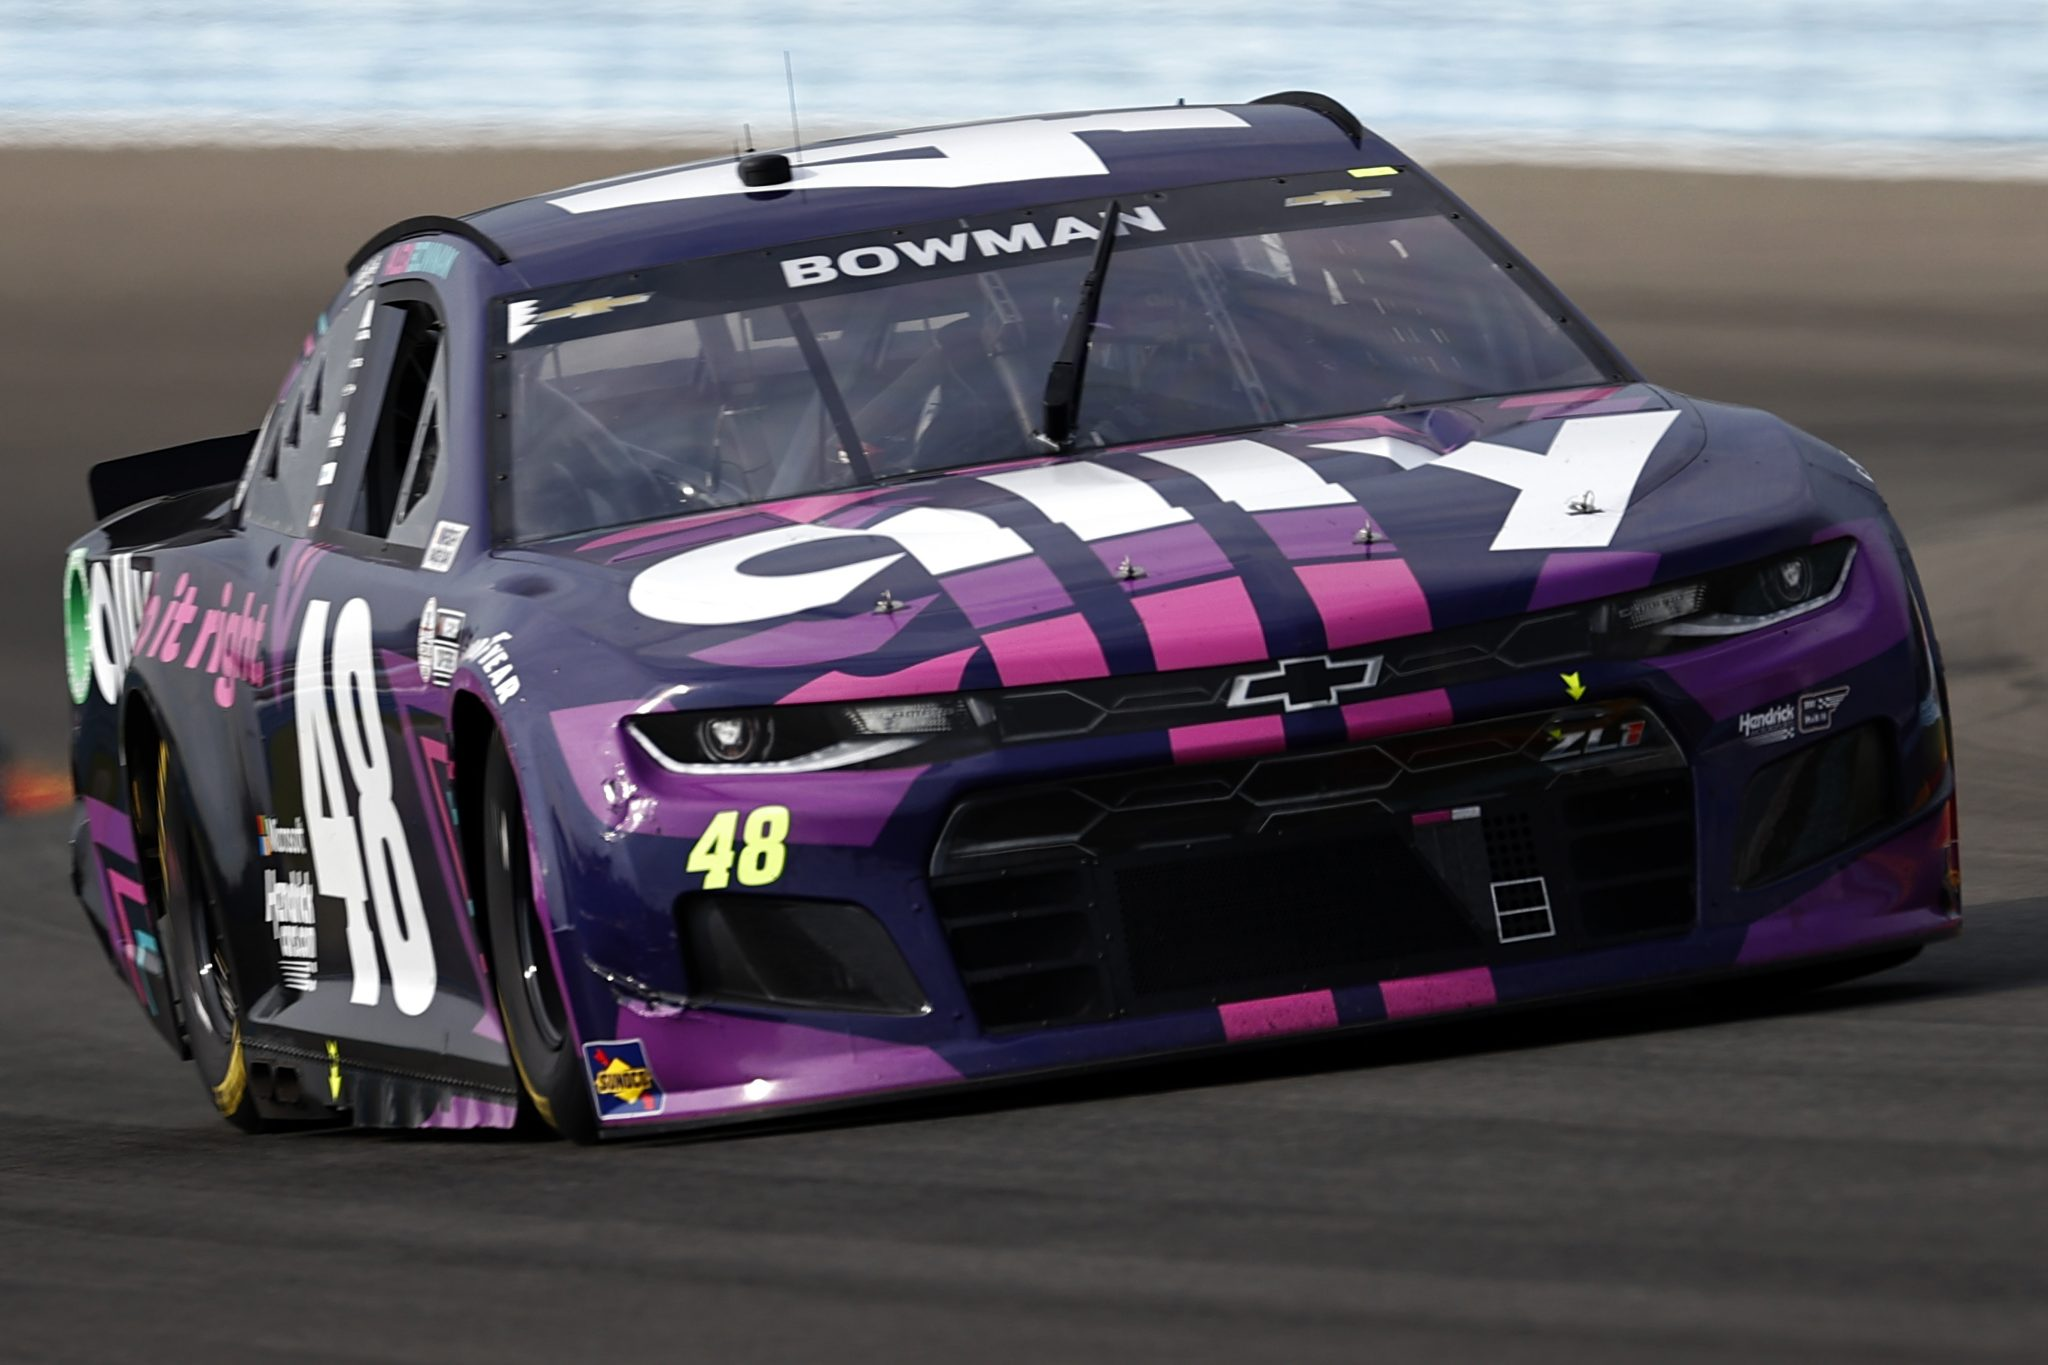 WATKINS GLEN, NEW YORK - AUGUST 08: Alex Bowman, driver of the #48 Ally Chevrolet, drives during the NASCAR Cup Series Go Bowling at The Glen at Watkins Glen International on August 08, 2021 in Watkins Glen, New York. (Photo by Jared C. Tilton/Getty Images) | Getty Images